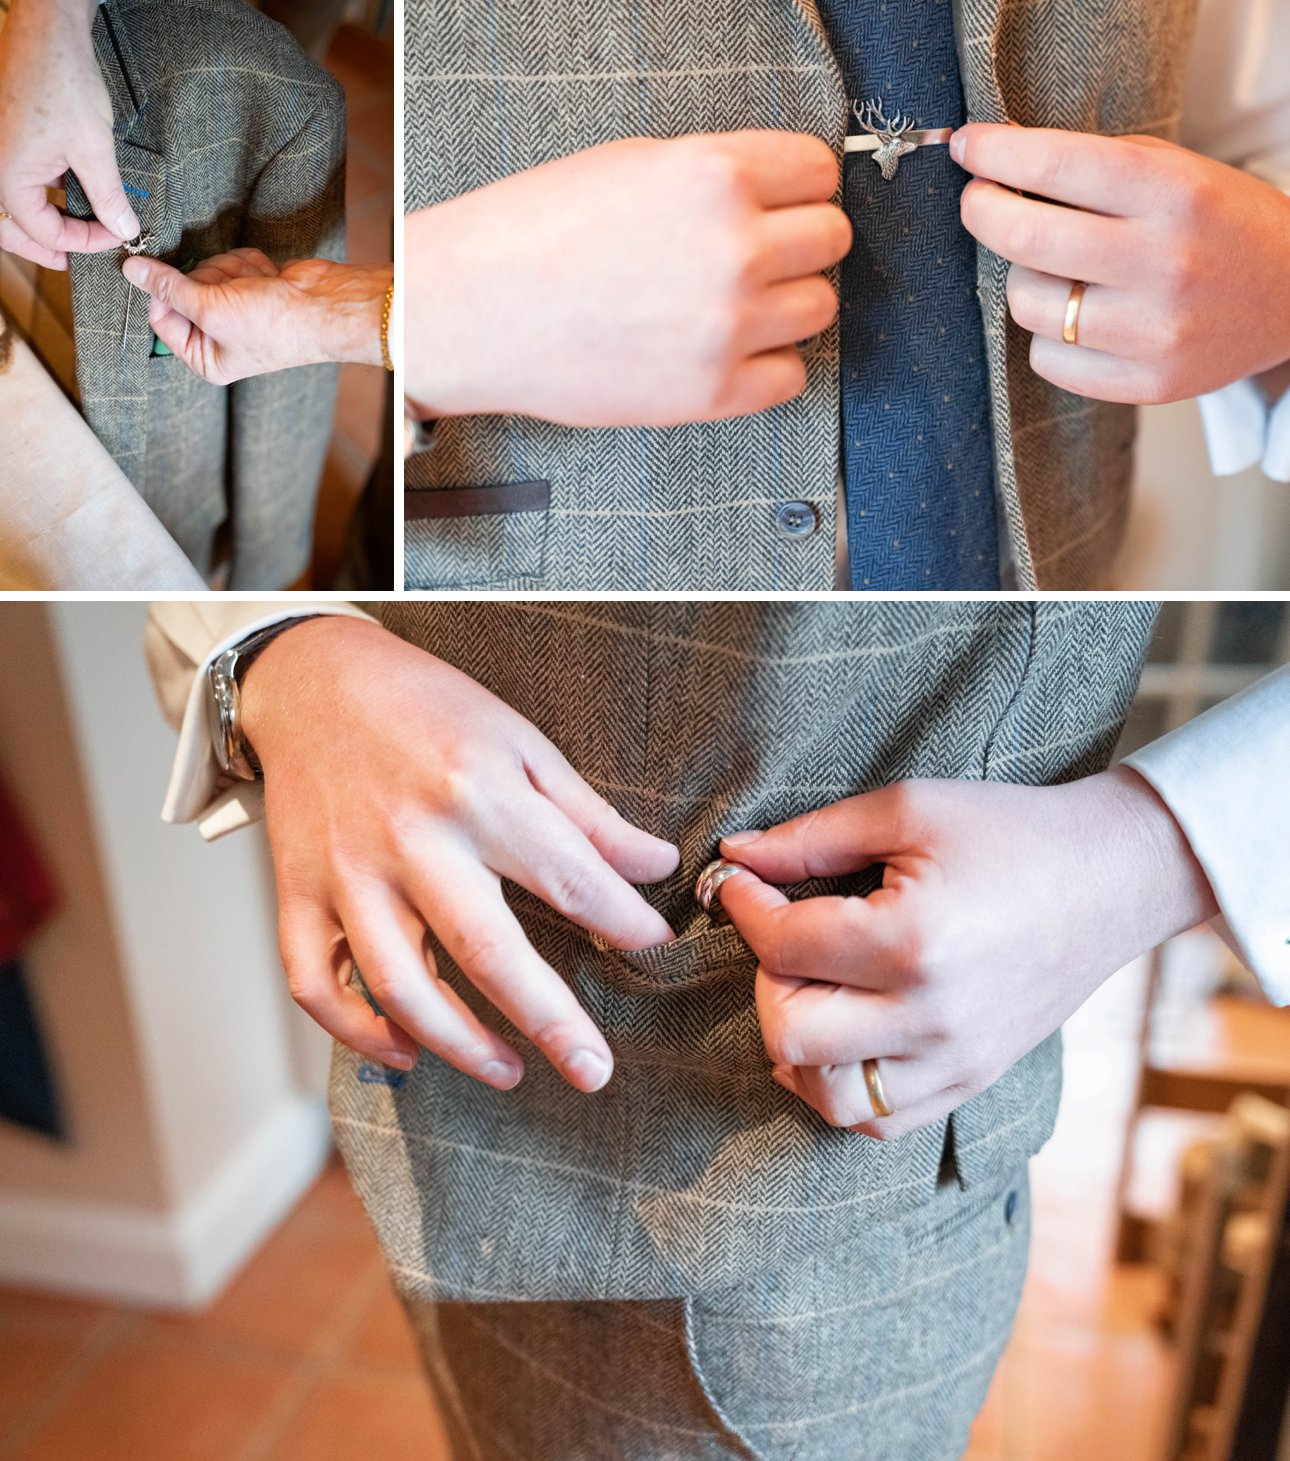 A groom and groomsmen getting ready on a wedding morning. Includes photos of the wedding rings and a gold tie pin.